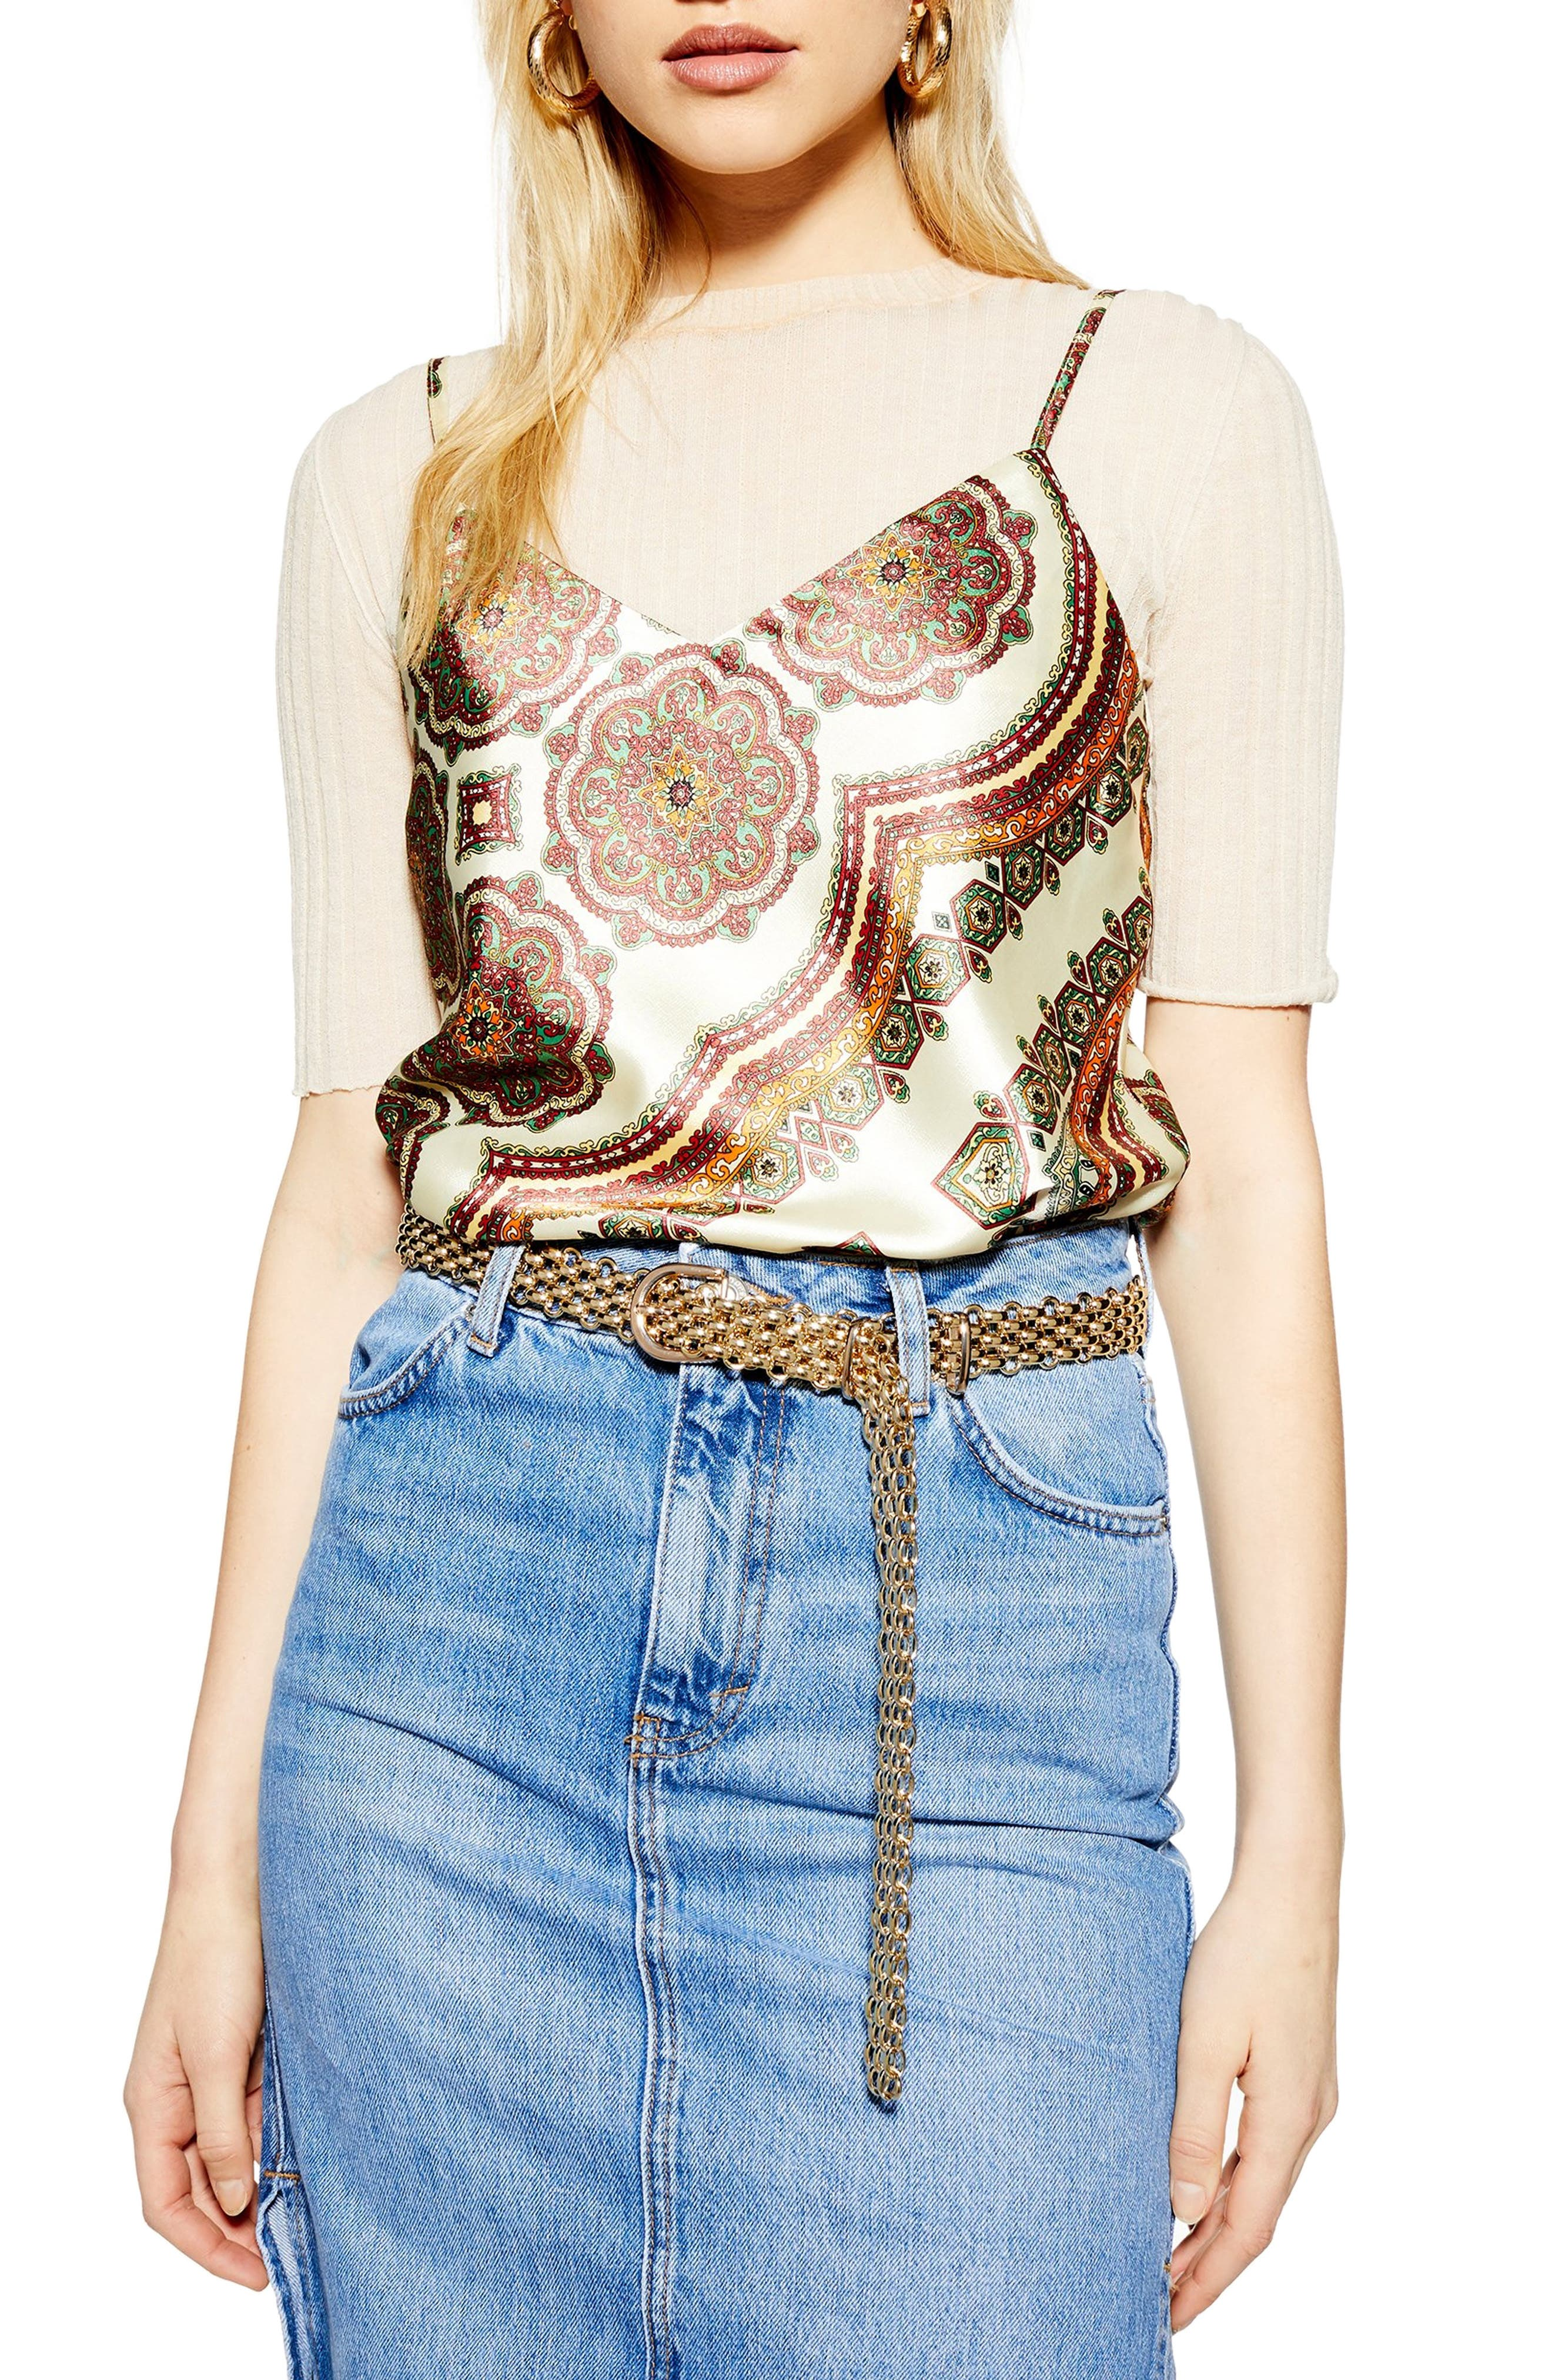 Topshop Paisley Print Camisole, US (fits like 10-12) - Brown